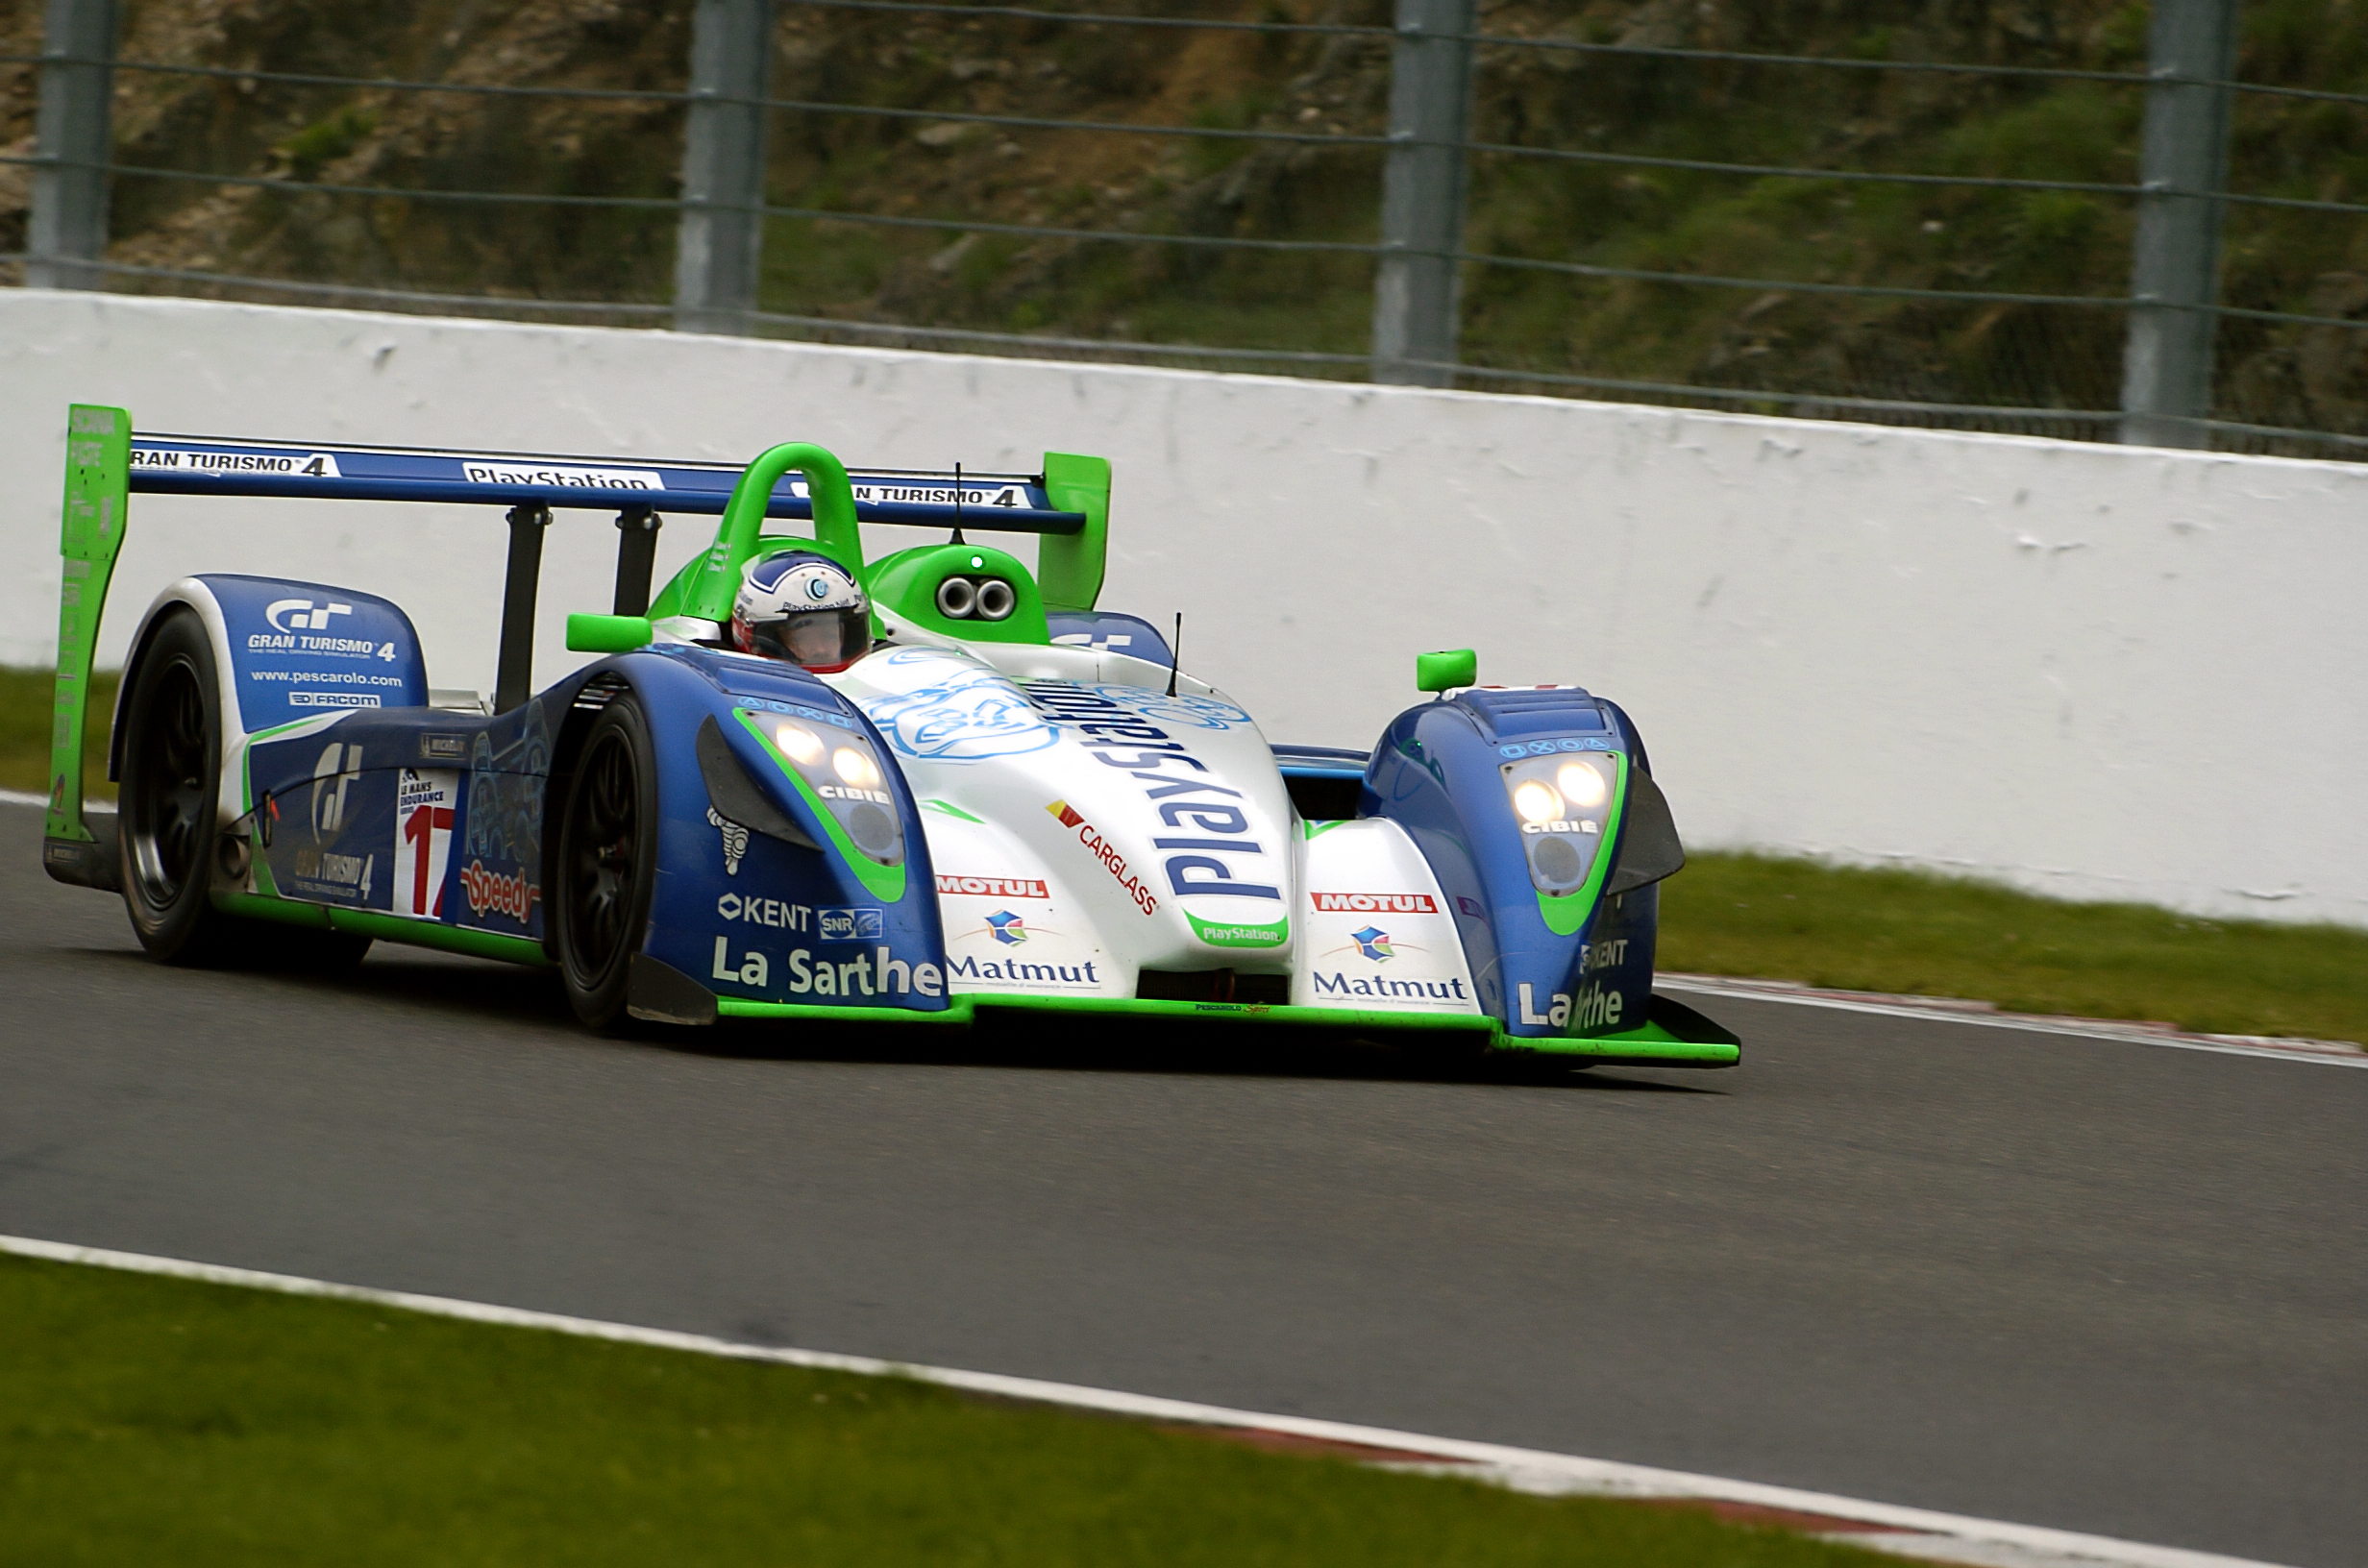 Pescarolo judd photo - 2